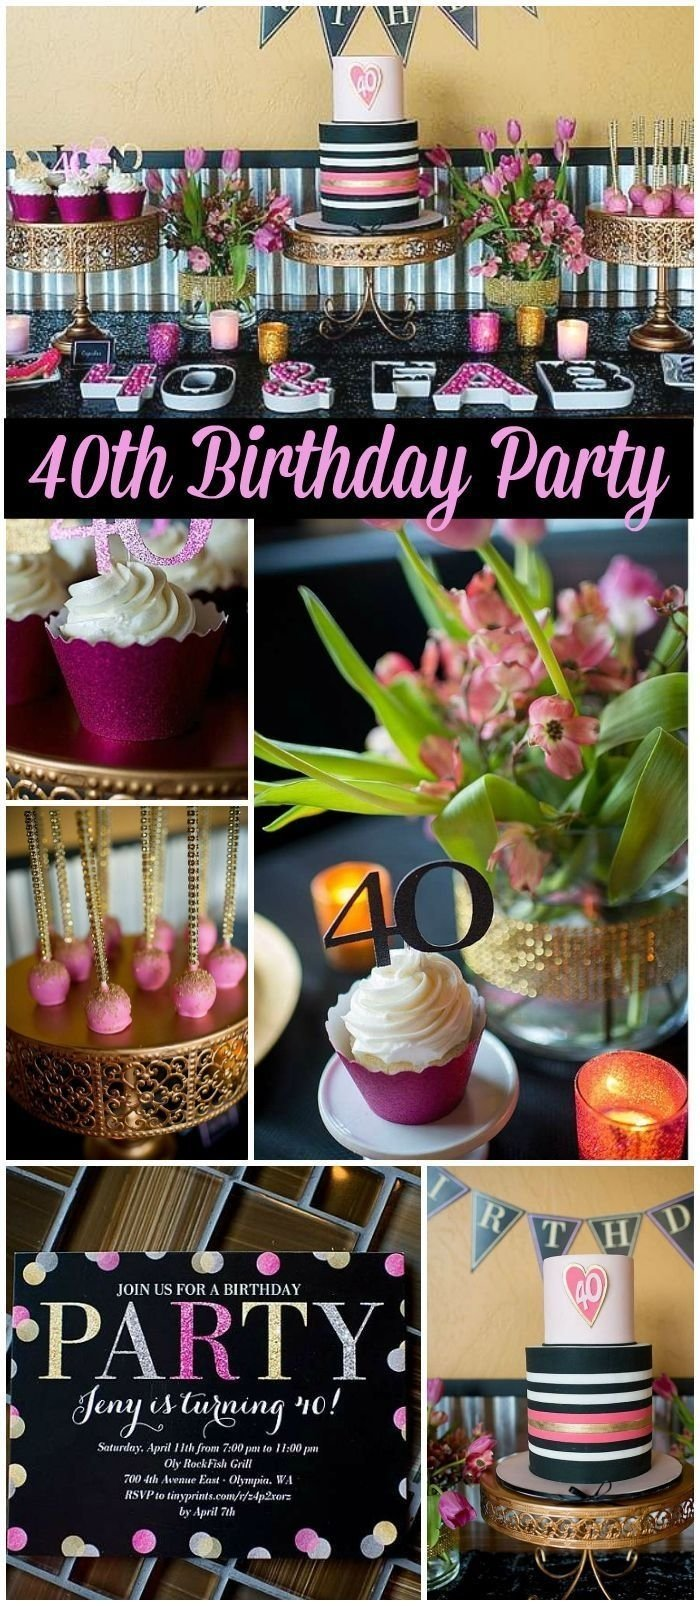 10 Fantastic Birthday Party Ideas For Women 40th birthday party ideas beautiful outdoor party ideas and